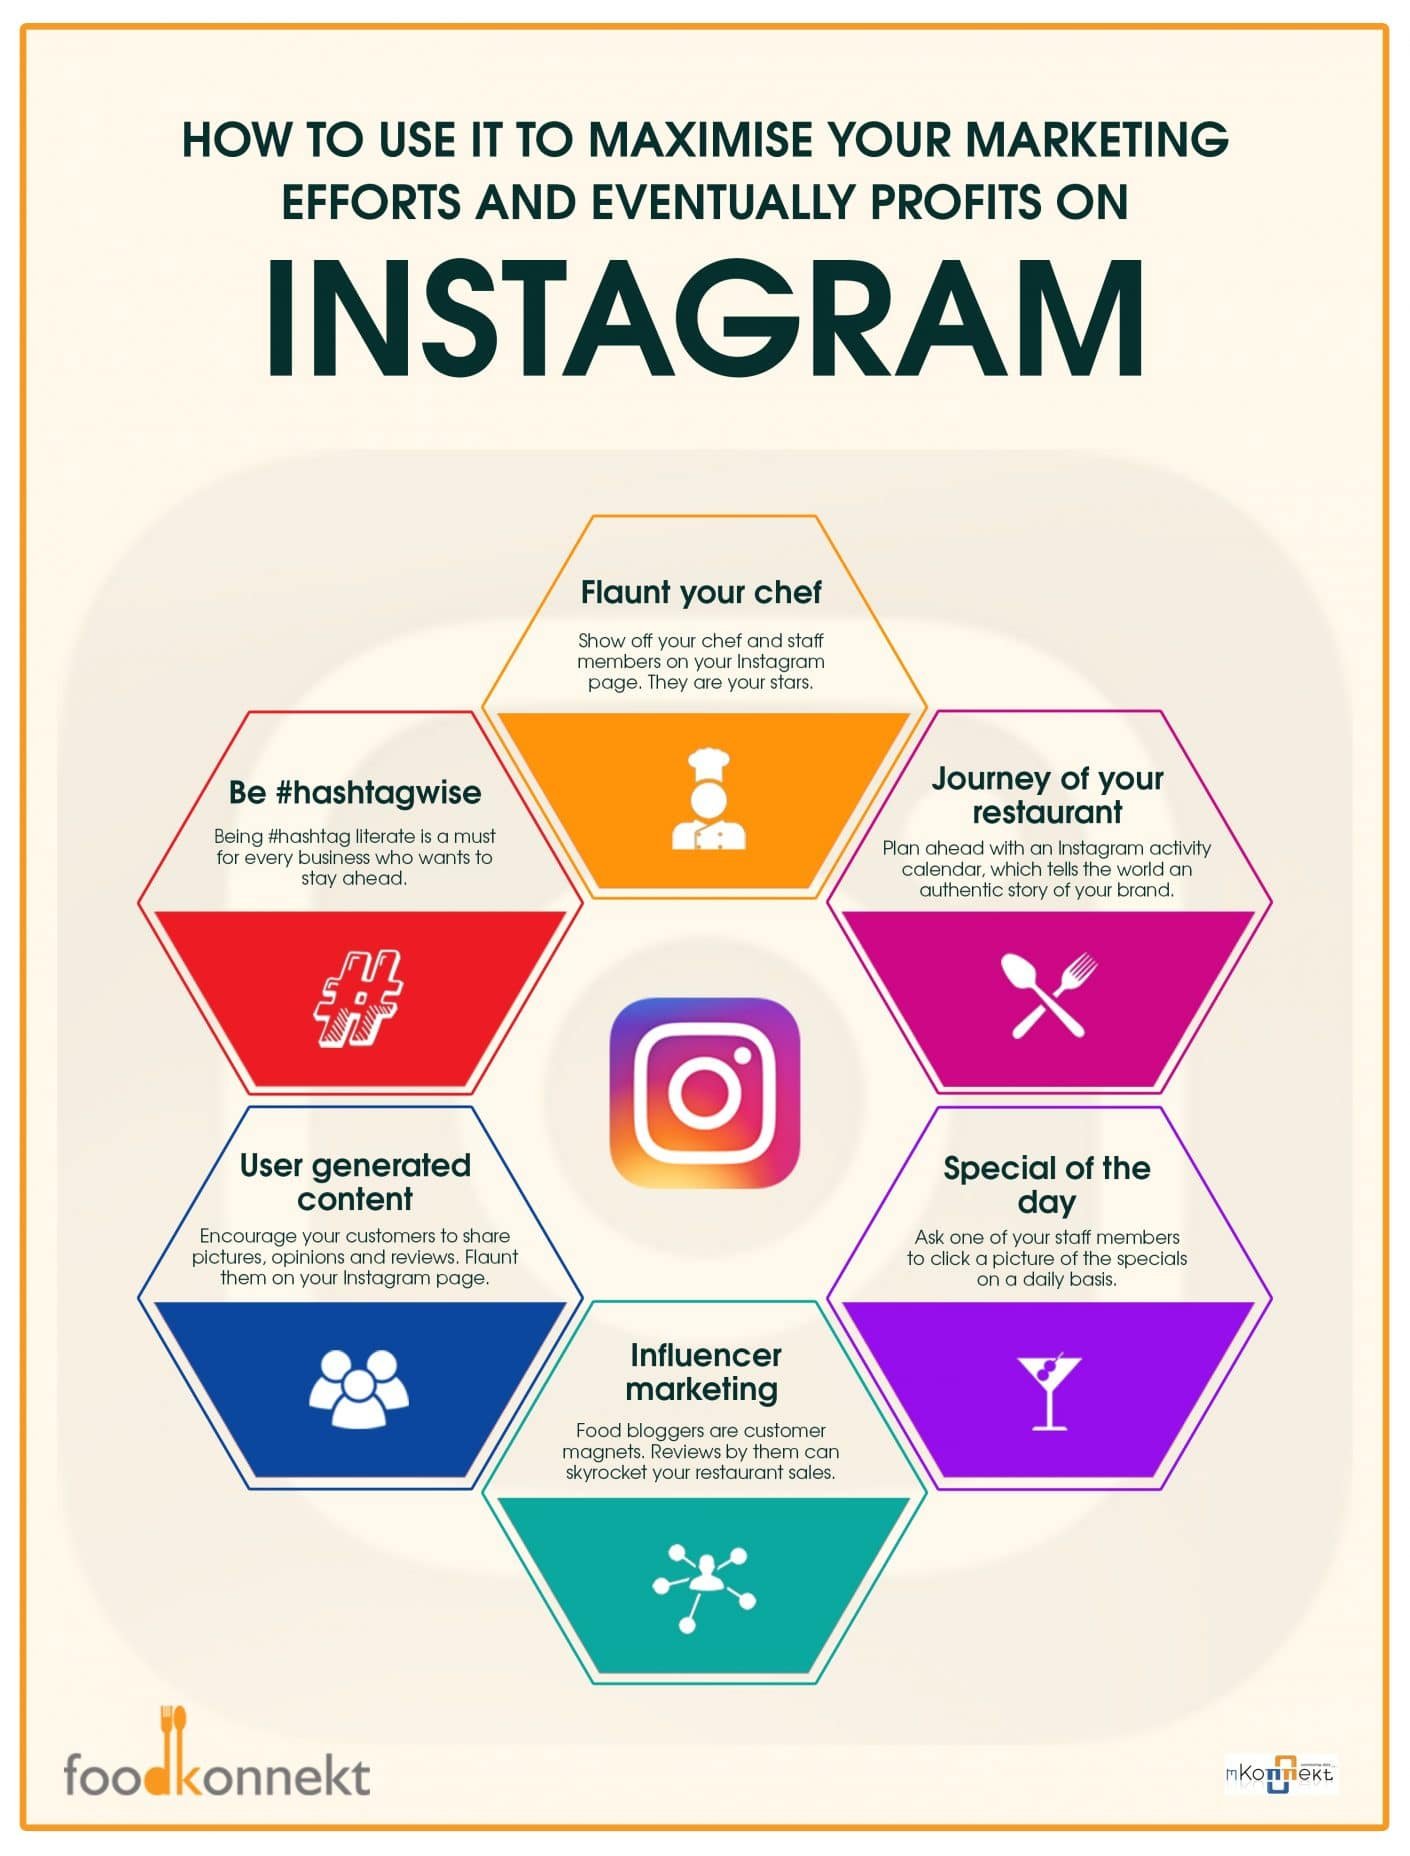 How to maximize your marketing efforts on Instagram - Infographic